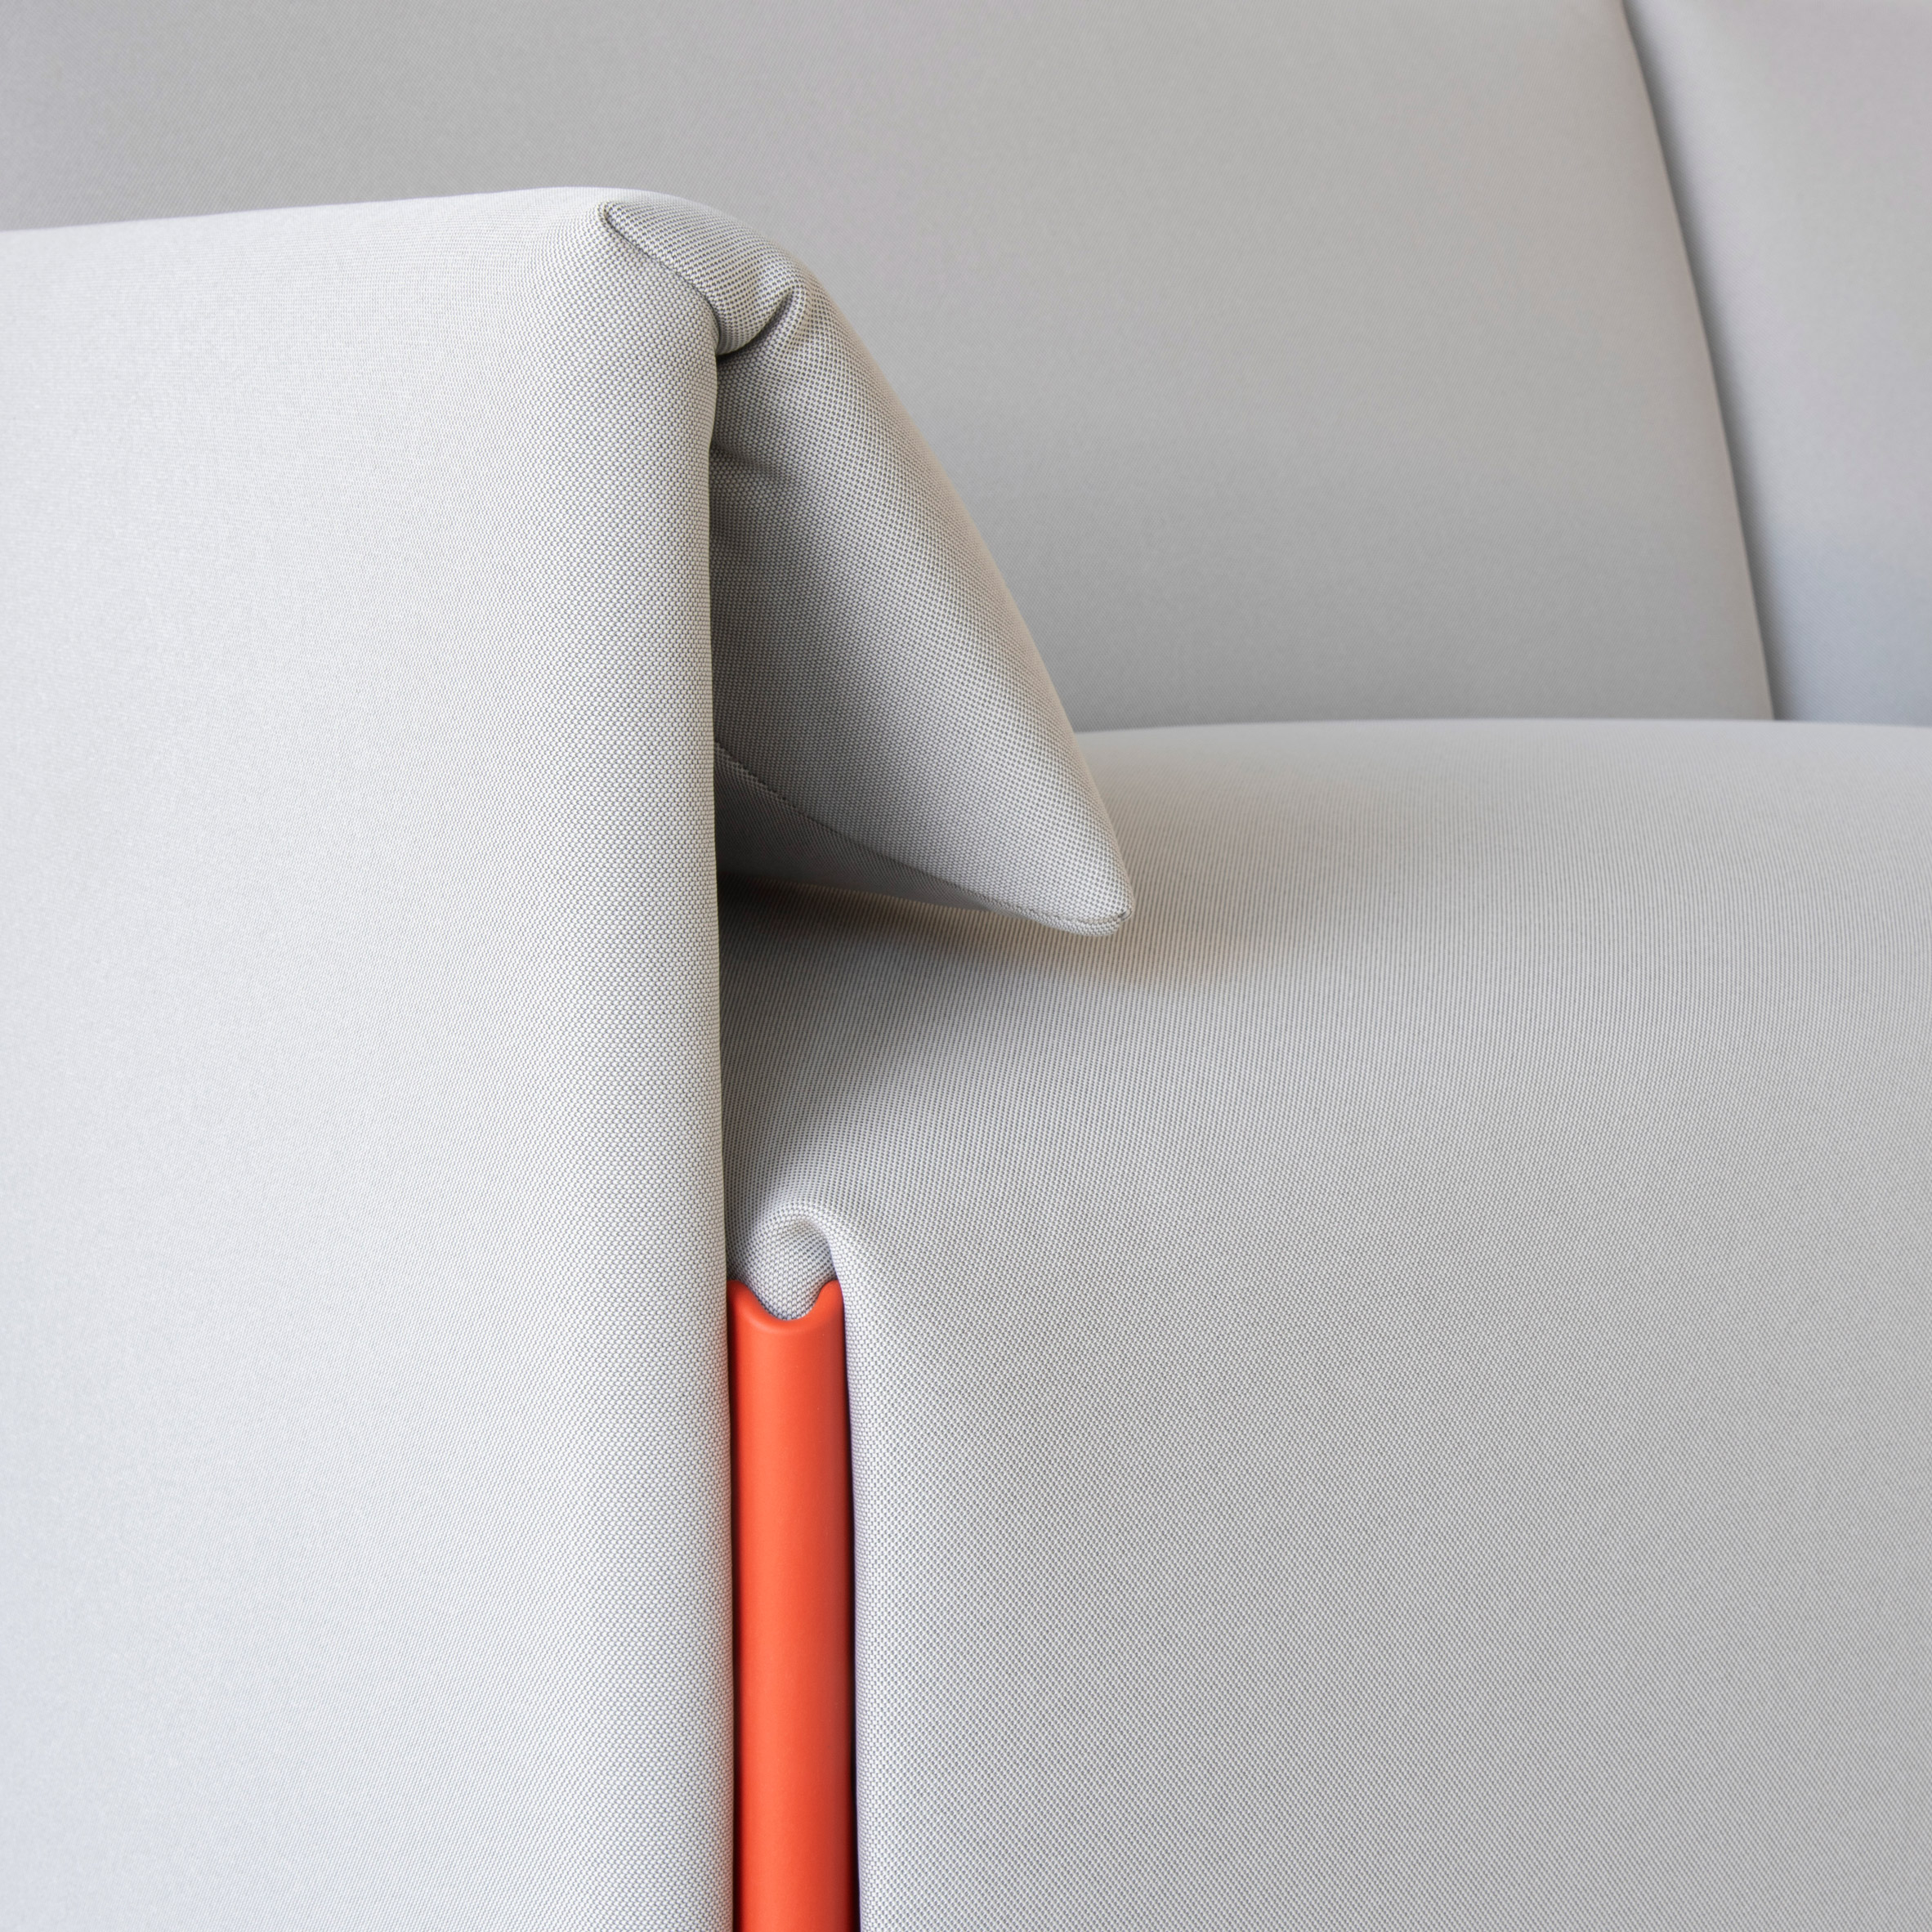 Grey Costume sofa by Stefan Diez for Magis with contrasting coloured connector